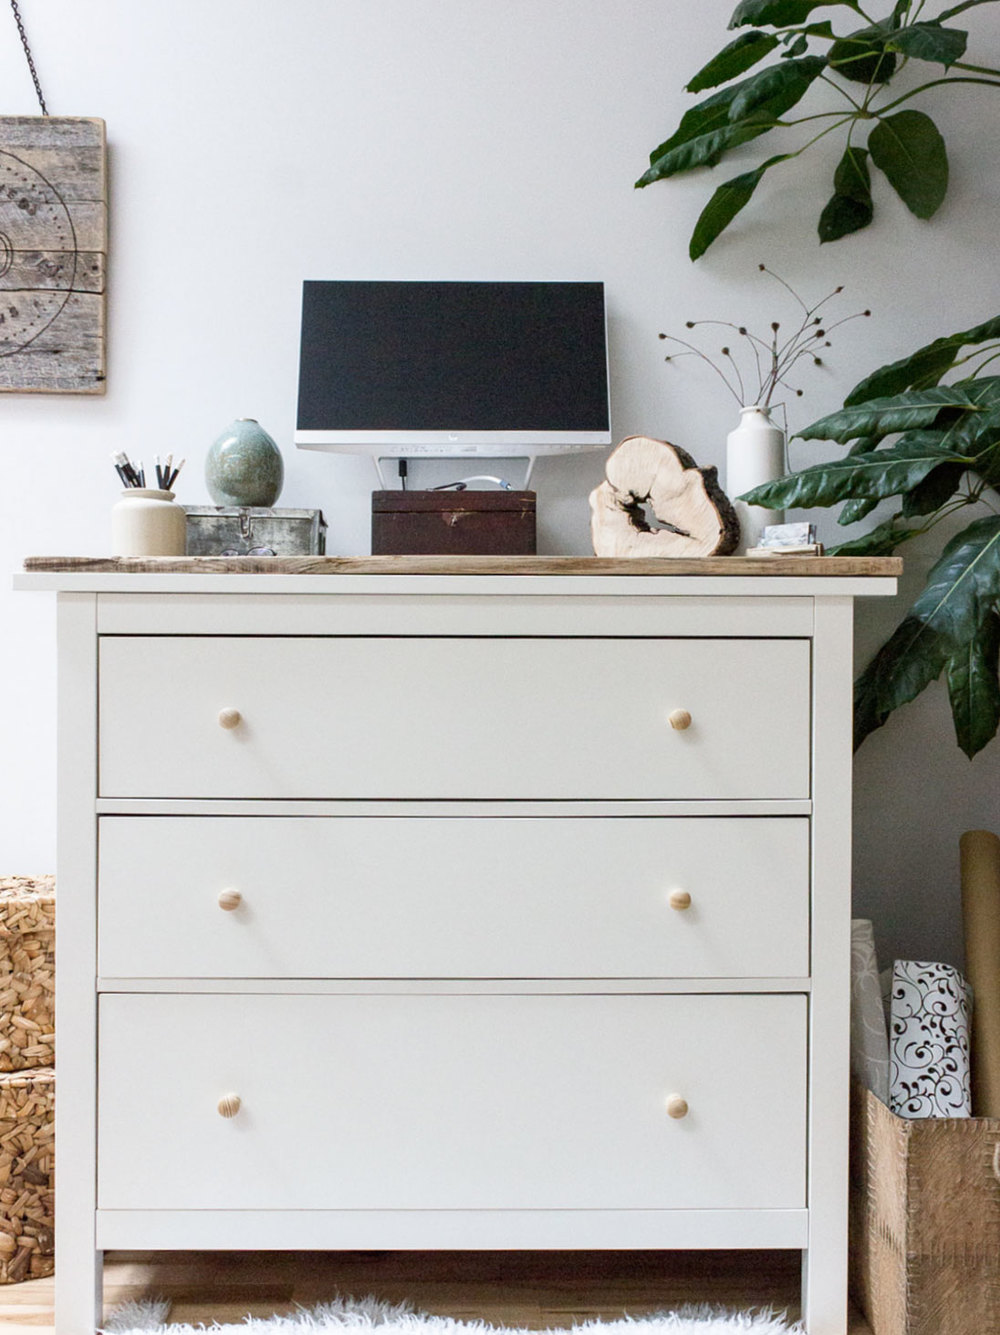 Diy Standing Desk With Ikea Hemnes Dresser Refreshed Designs